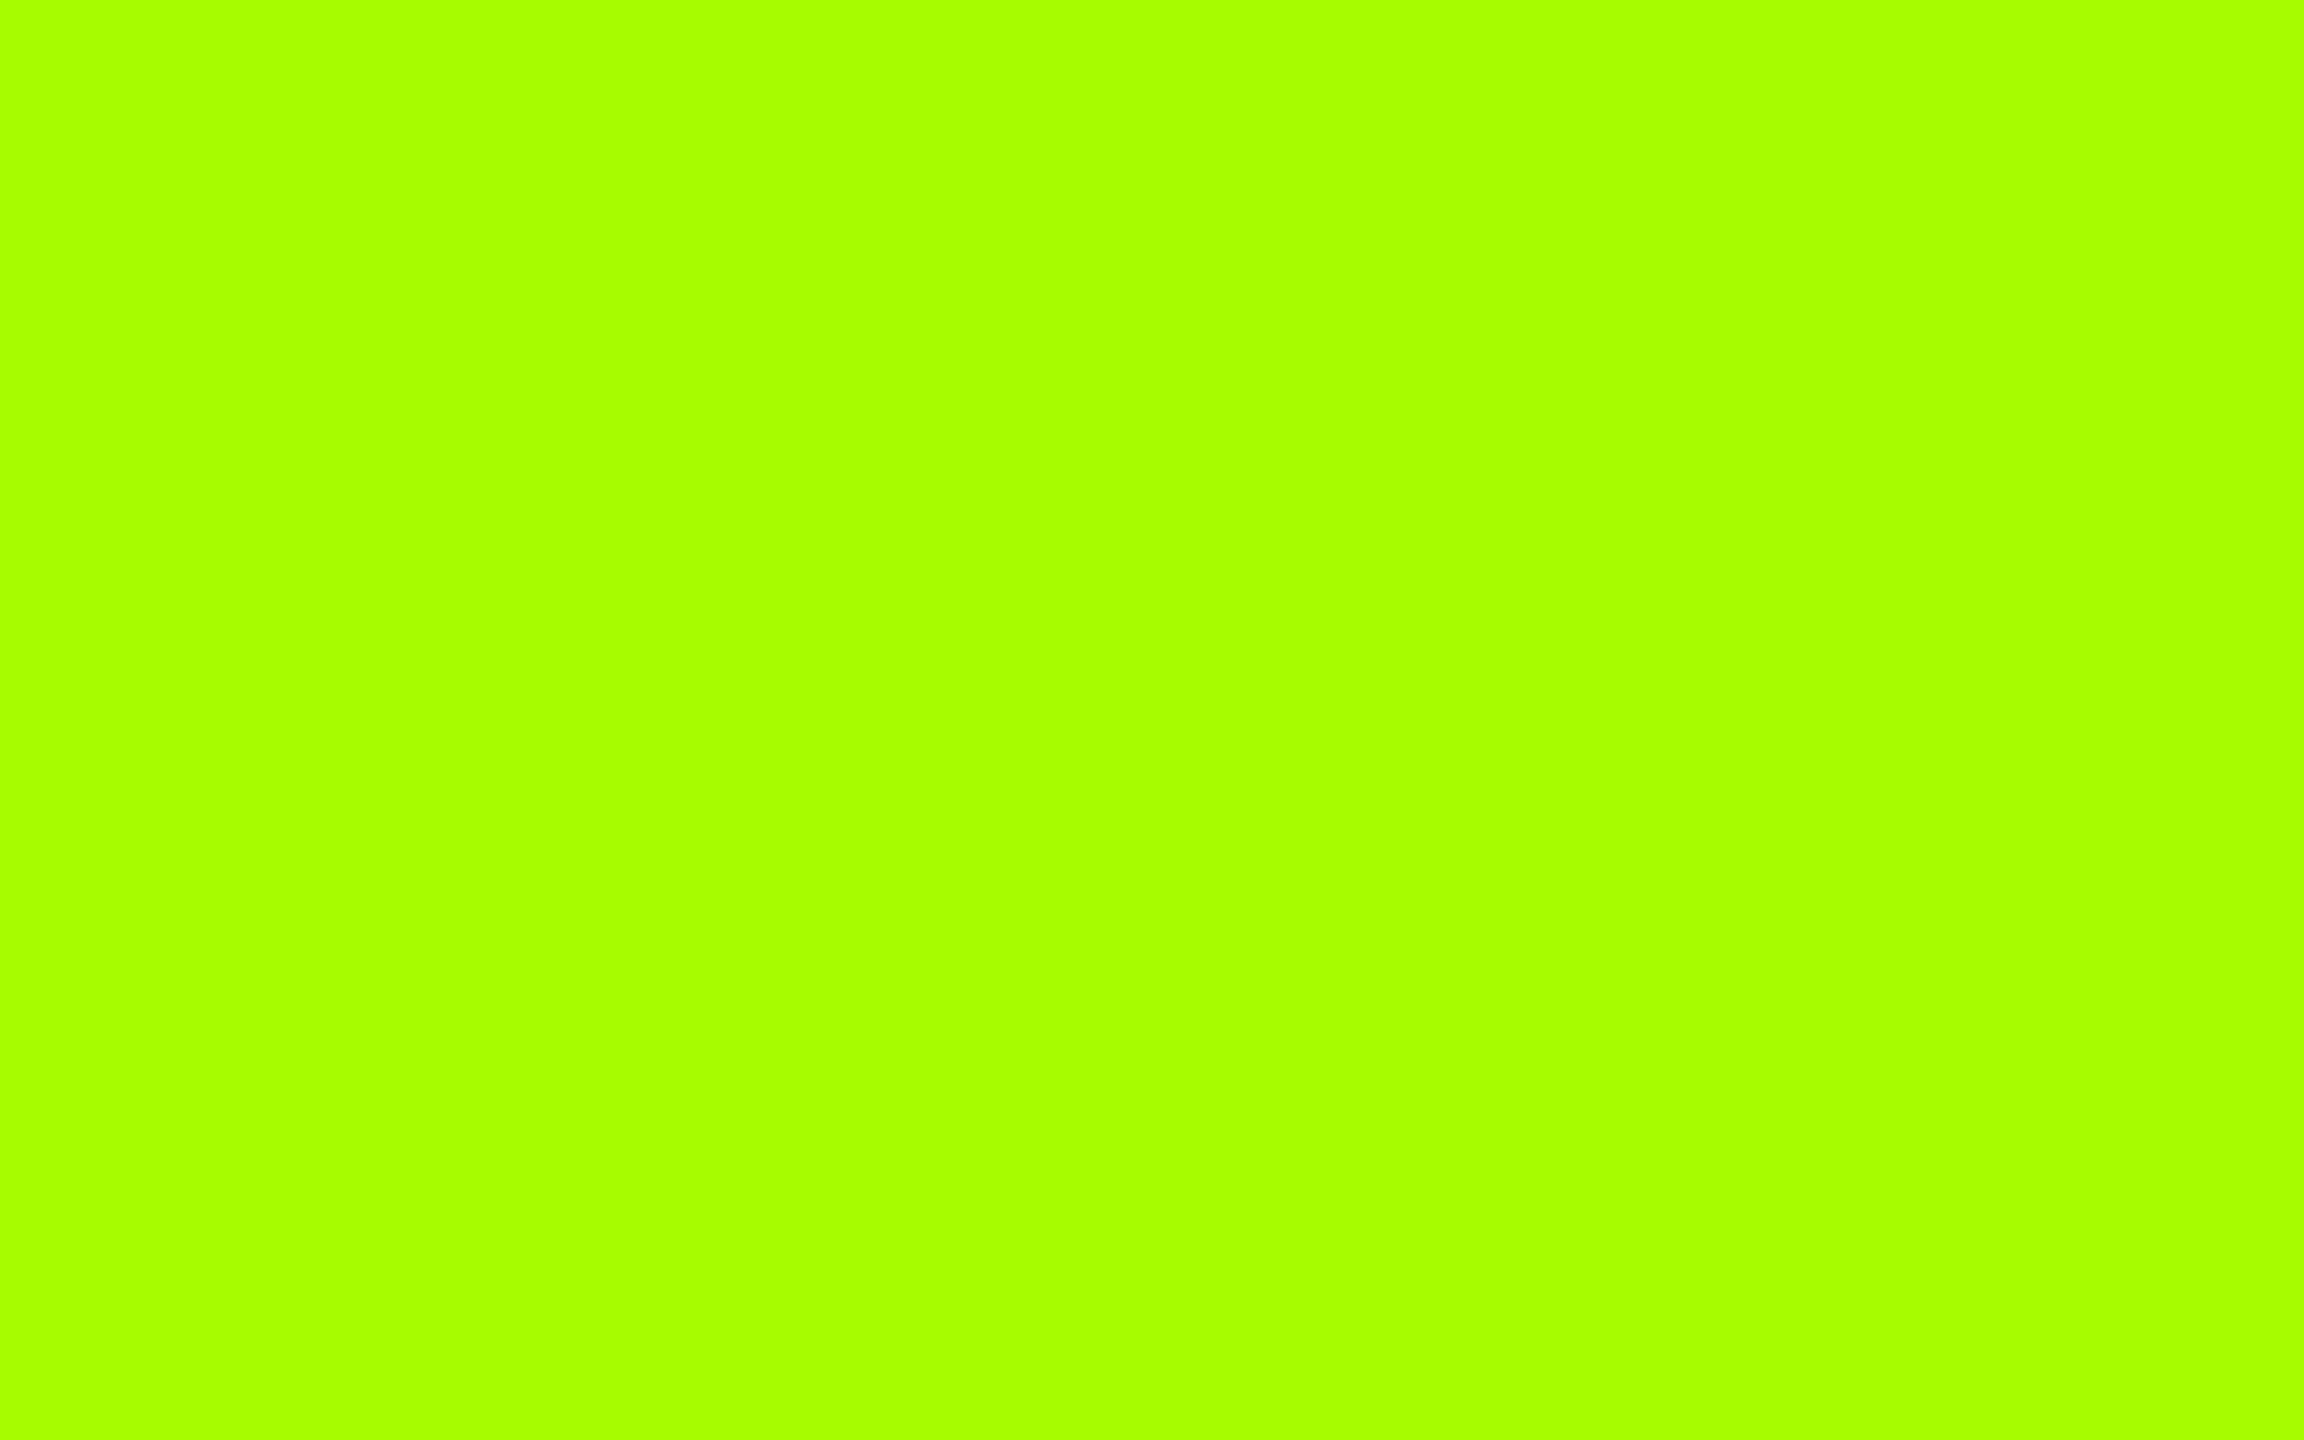 2304x1440 Spring Bud Solid Color Background